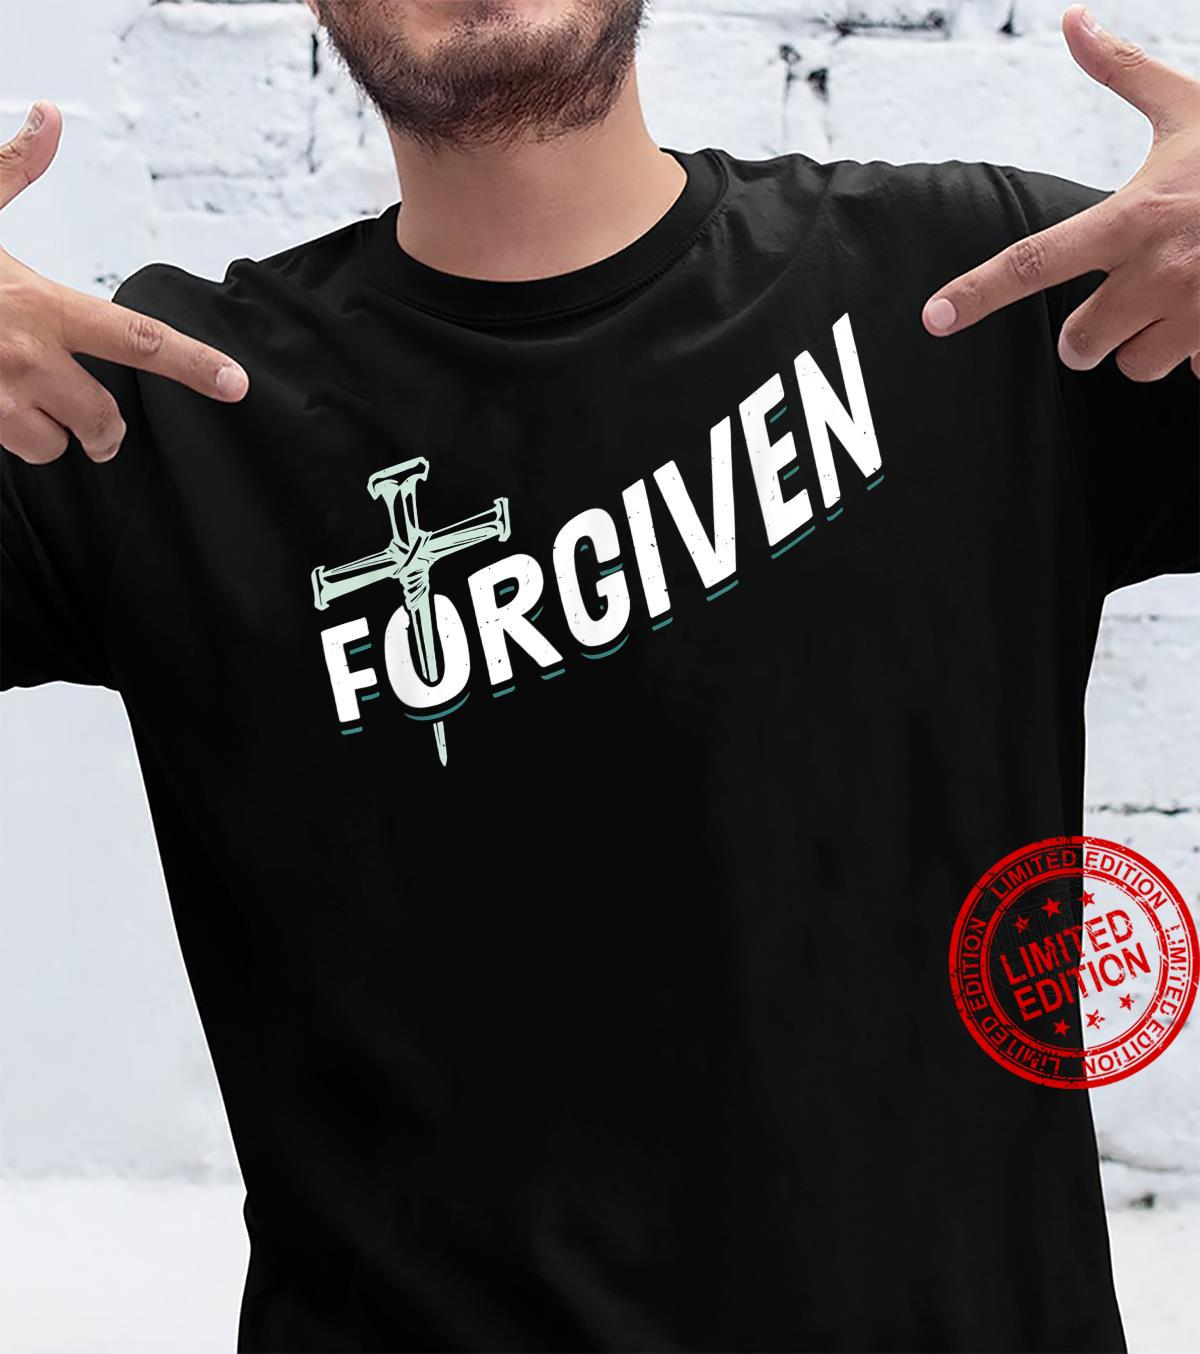 Funny Christian Design Saved and Forgiven Shirt